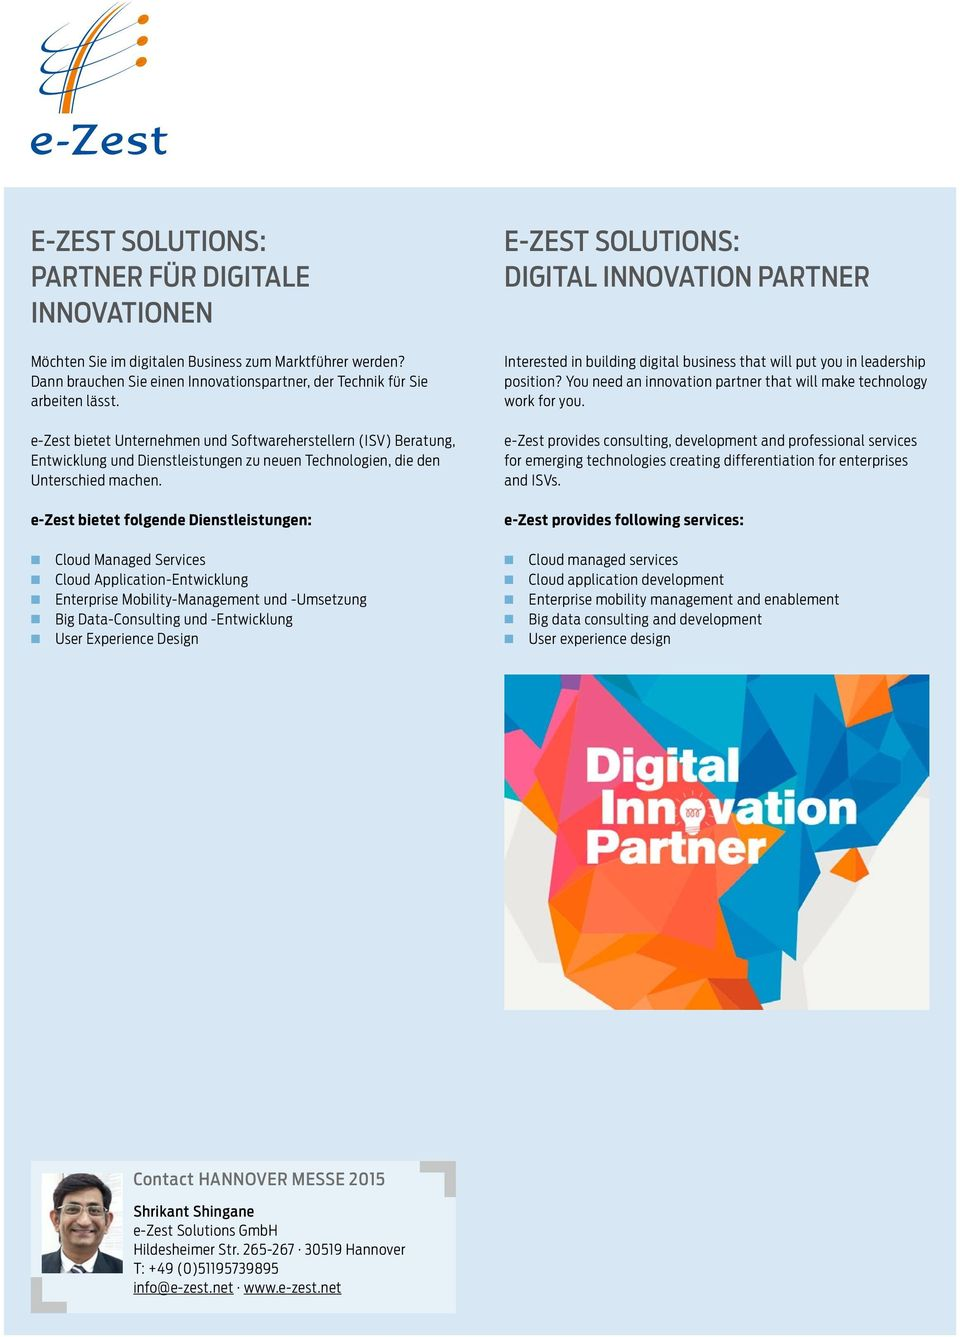 e-zest bietet folgede Diestleistuge: E-ZEST SOLUTIONS: DIGITAL INNOVATION PARTNER Iterested i buildig digital busiess that will put you i leadership positio?